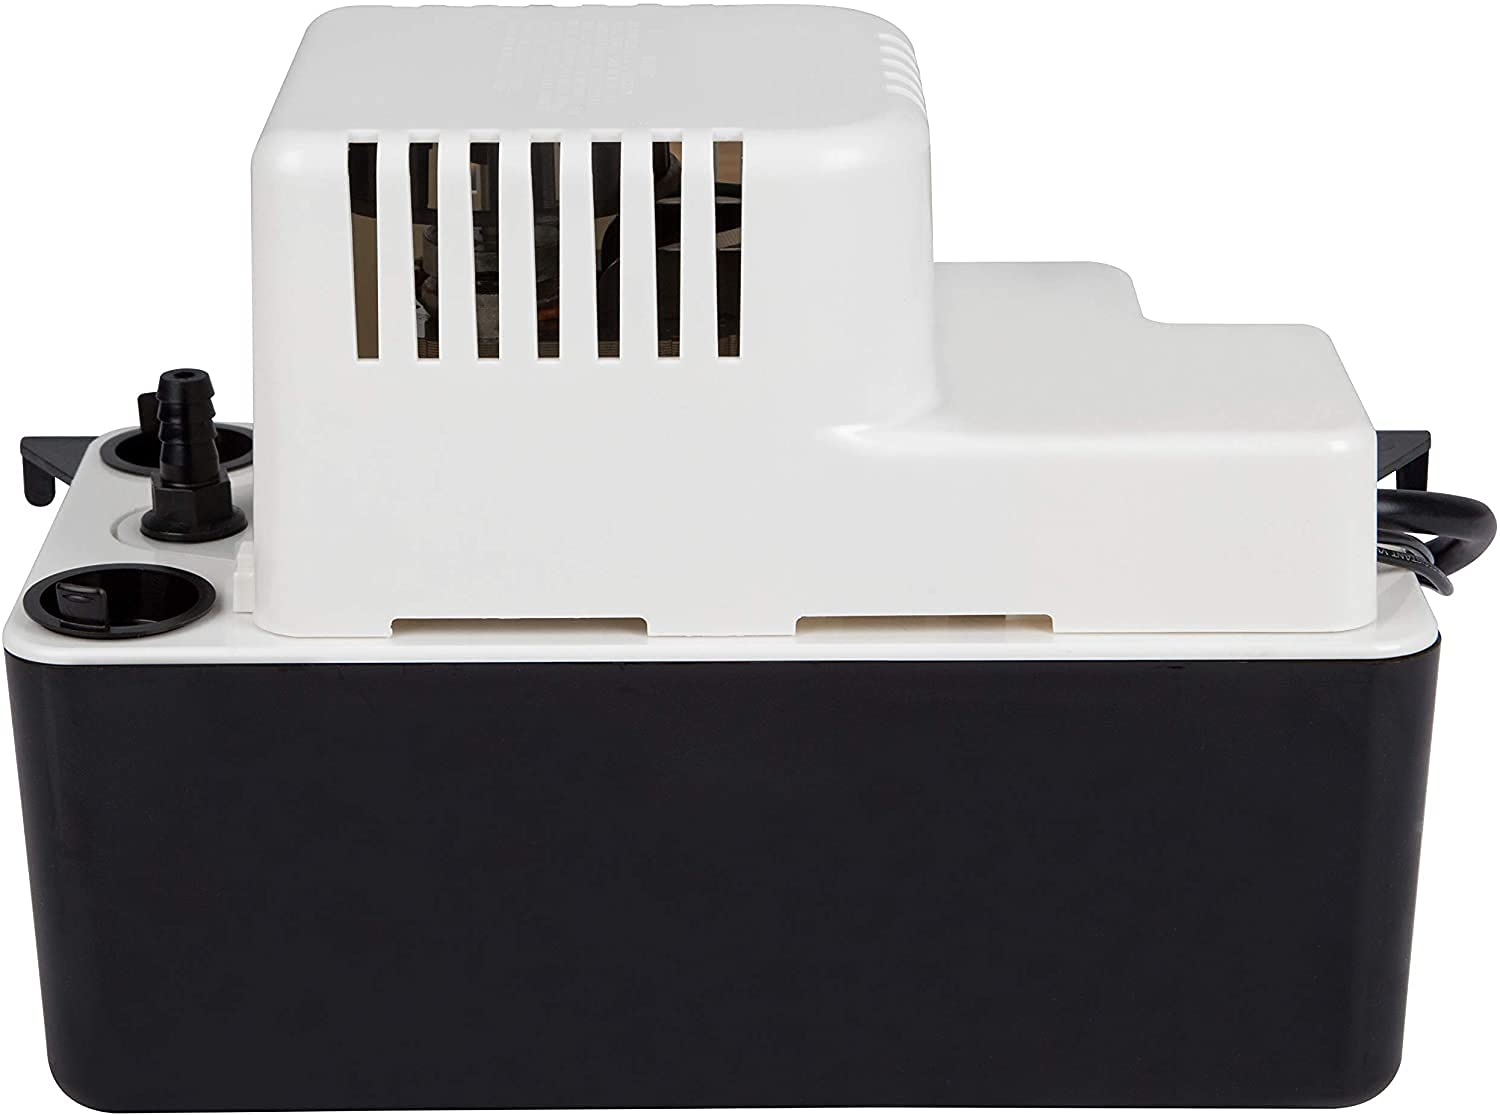 LITTLE GIANT 554401 Automatic Condensate Removal Pump, 1.125